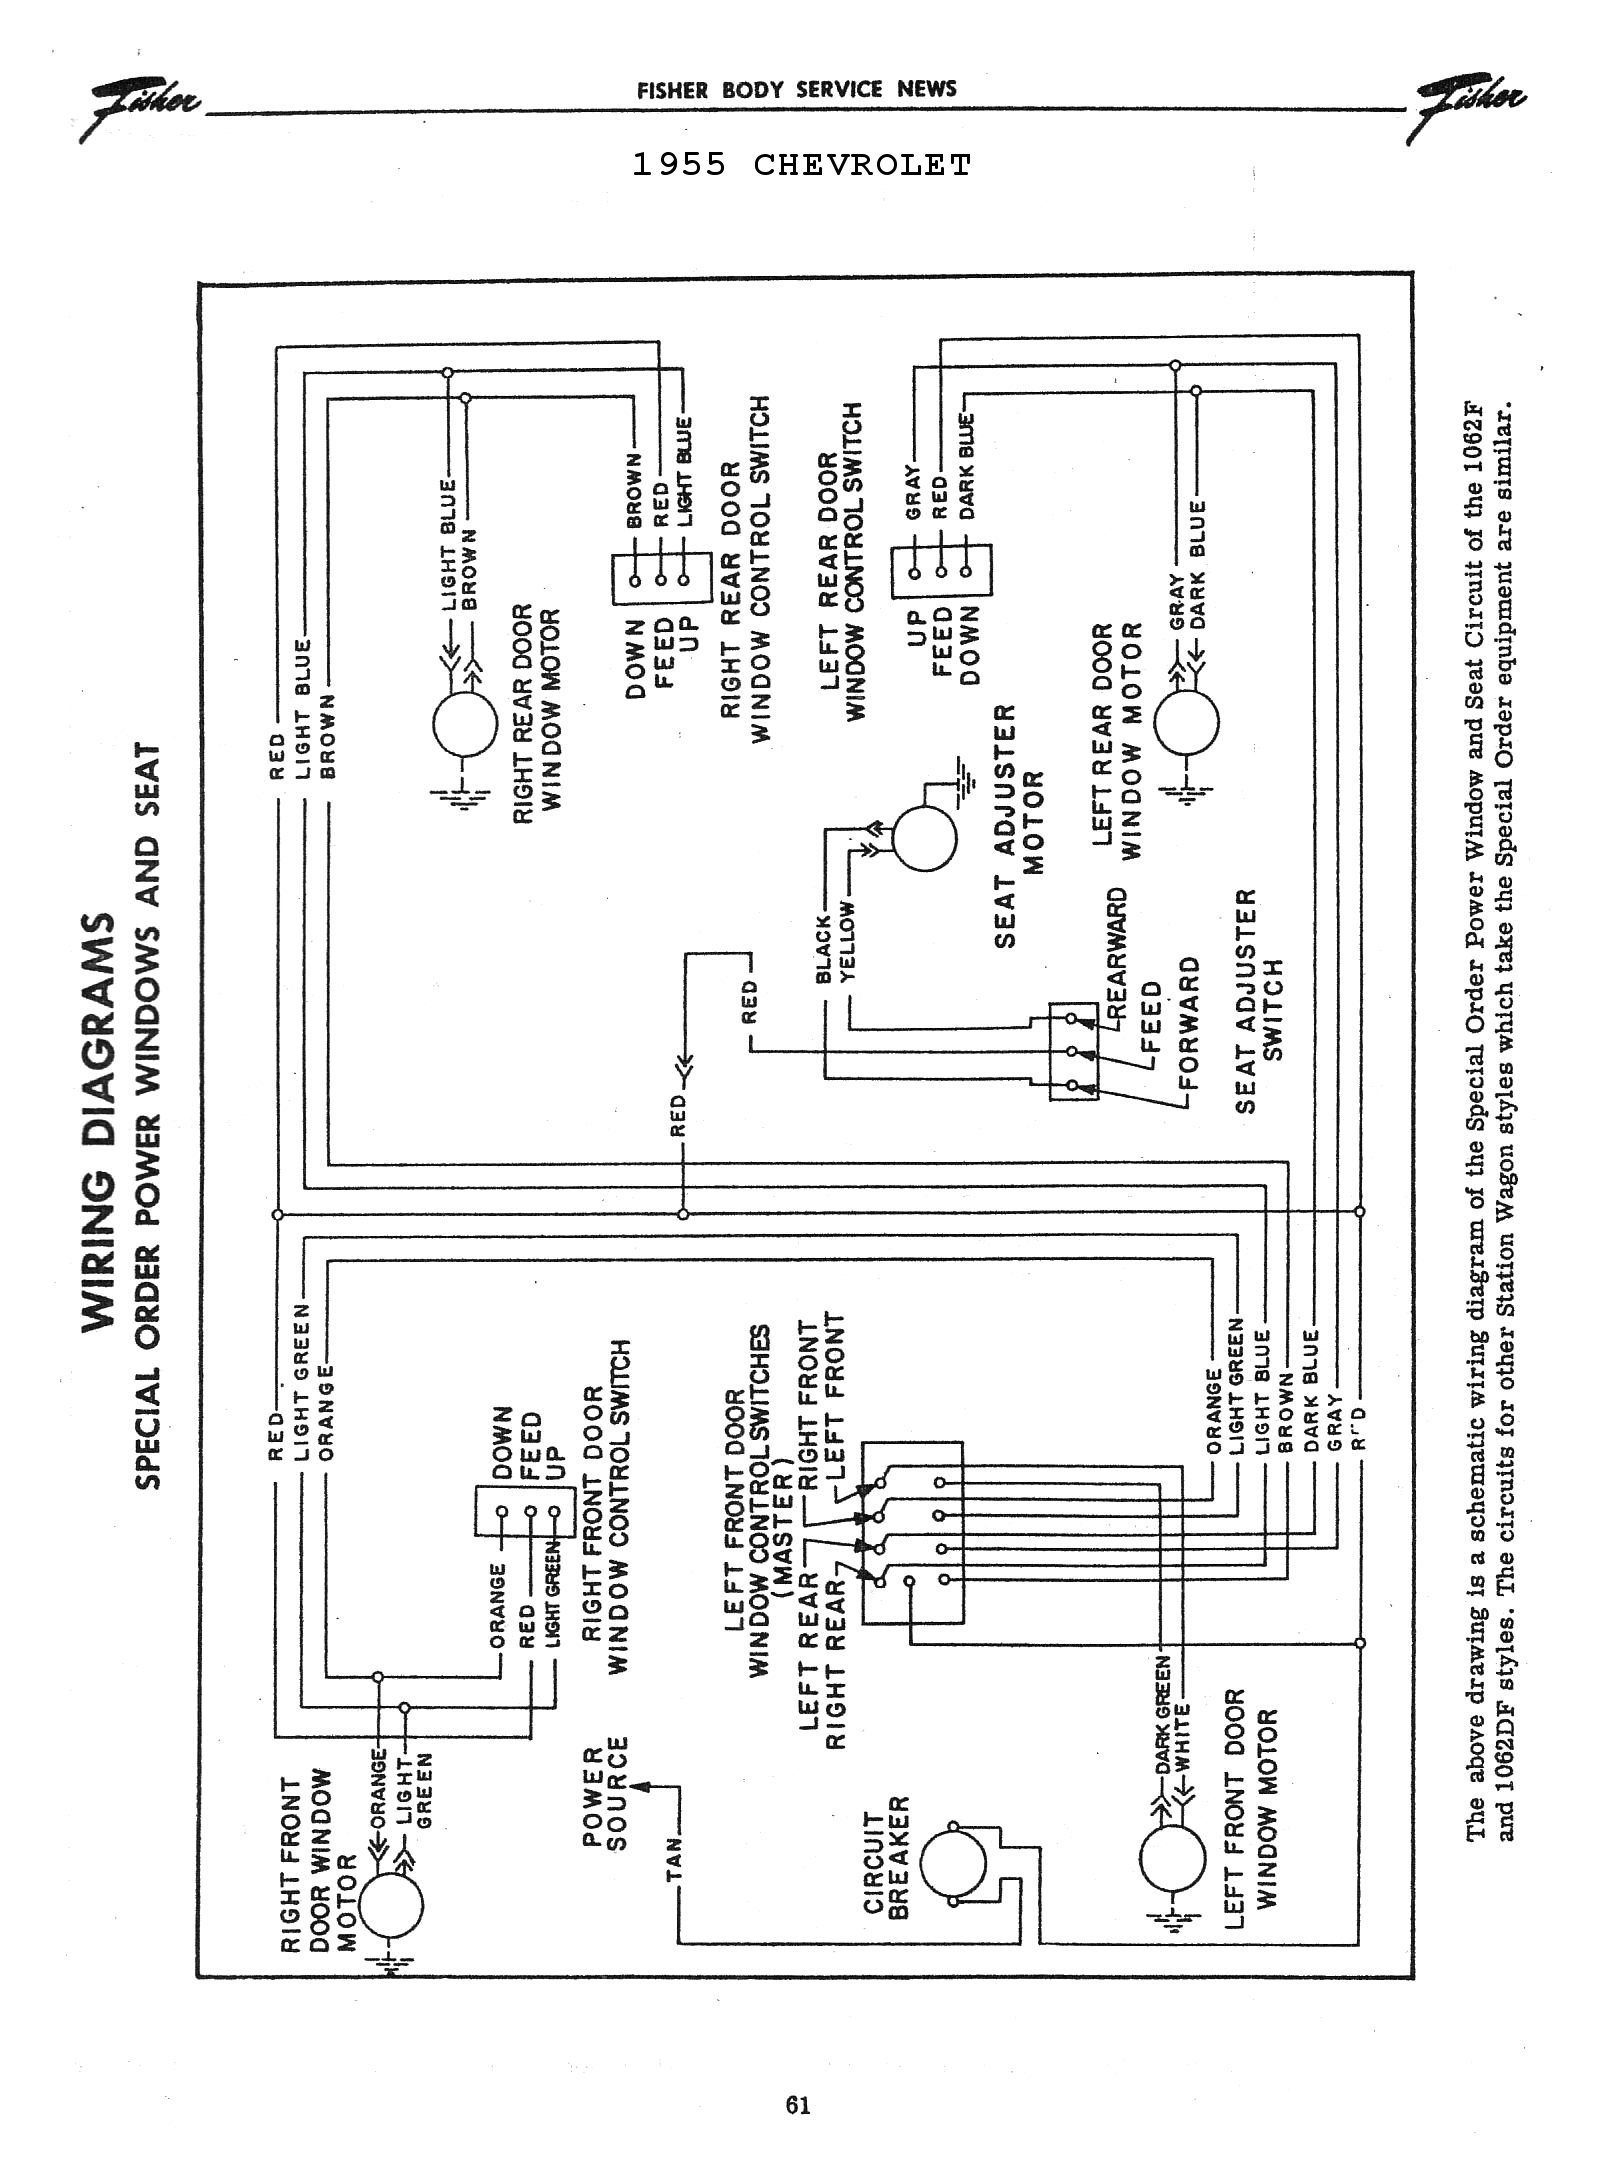 55 chevy pickup wiring diagram wiring diagram and hernes 55 chevy belair wiring diagram automotive base 55 chevy ignition switch